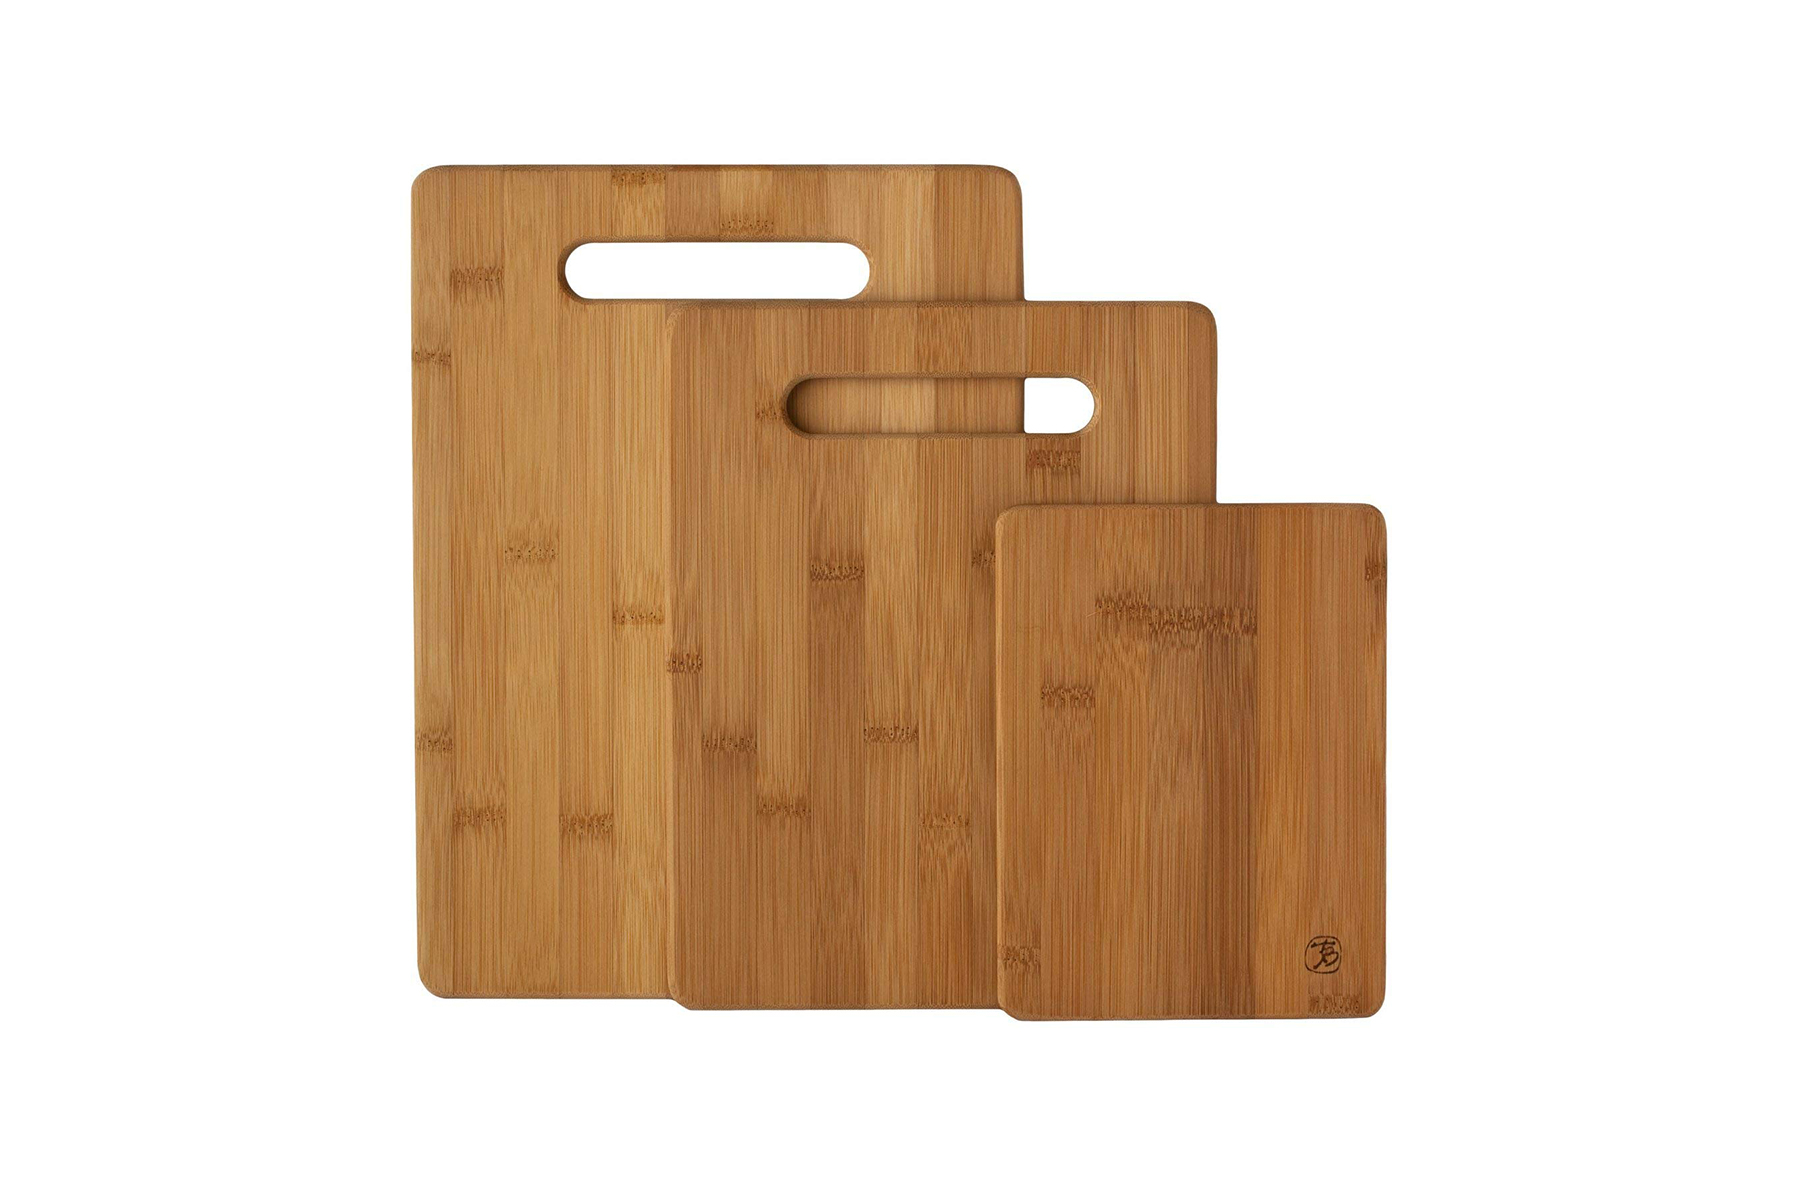 Totally Bamboo Three Piece Bamboo Serving and Cutting Board